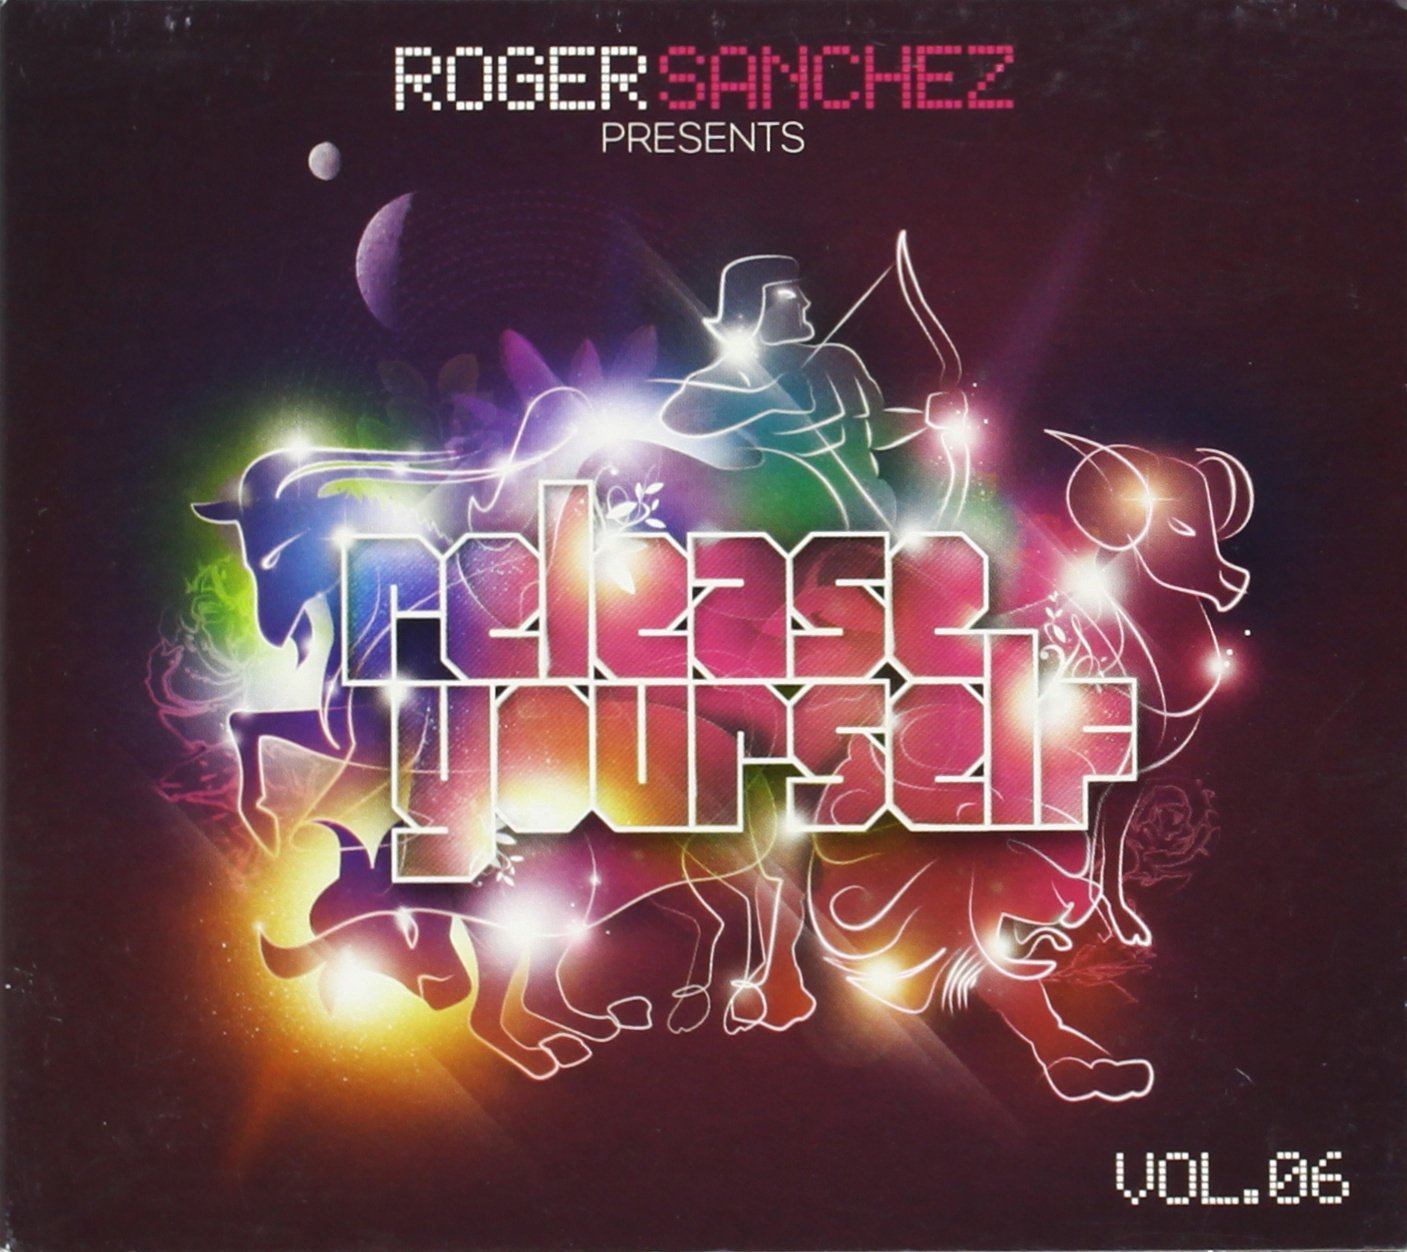 RELEASE YOURSELF ( 2 CD )